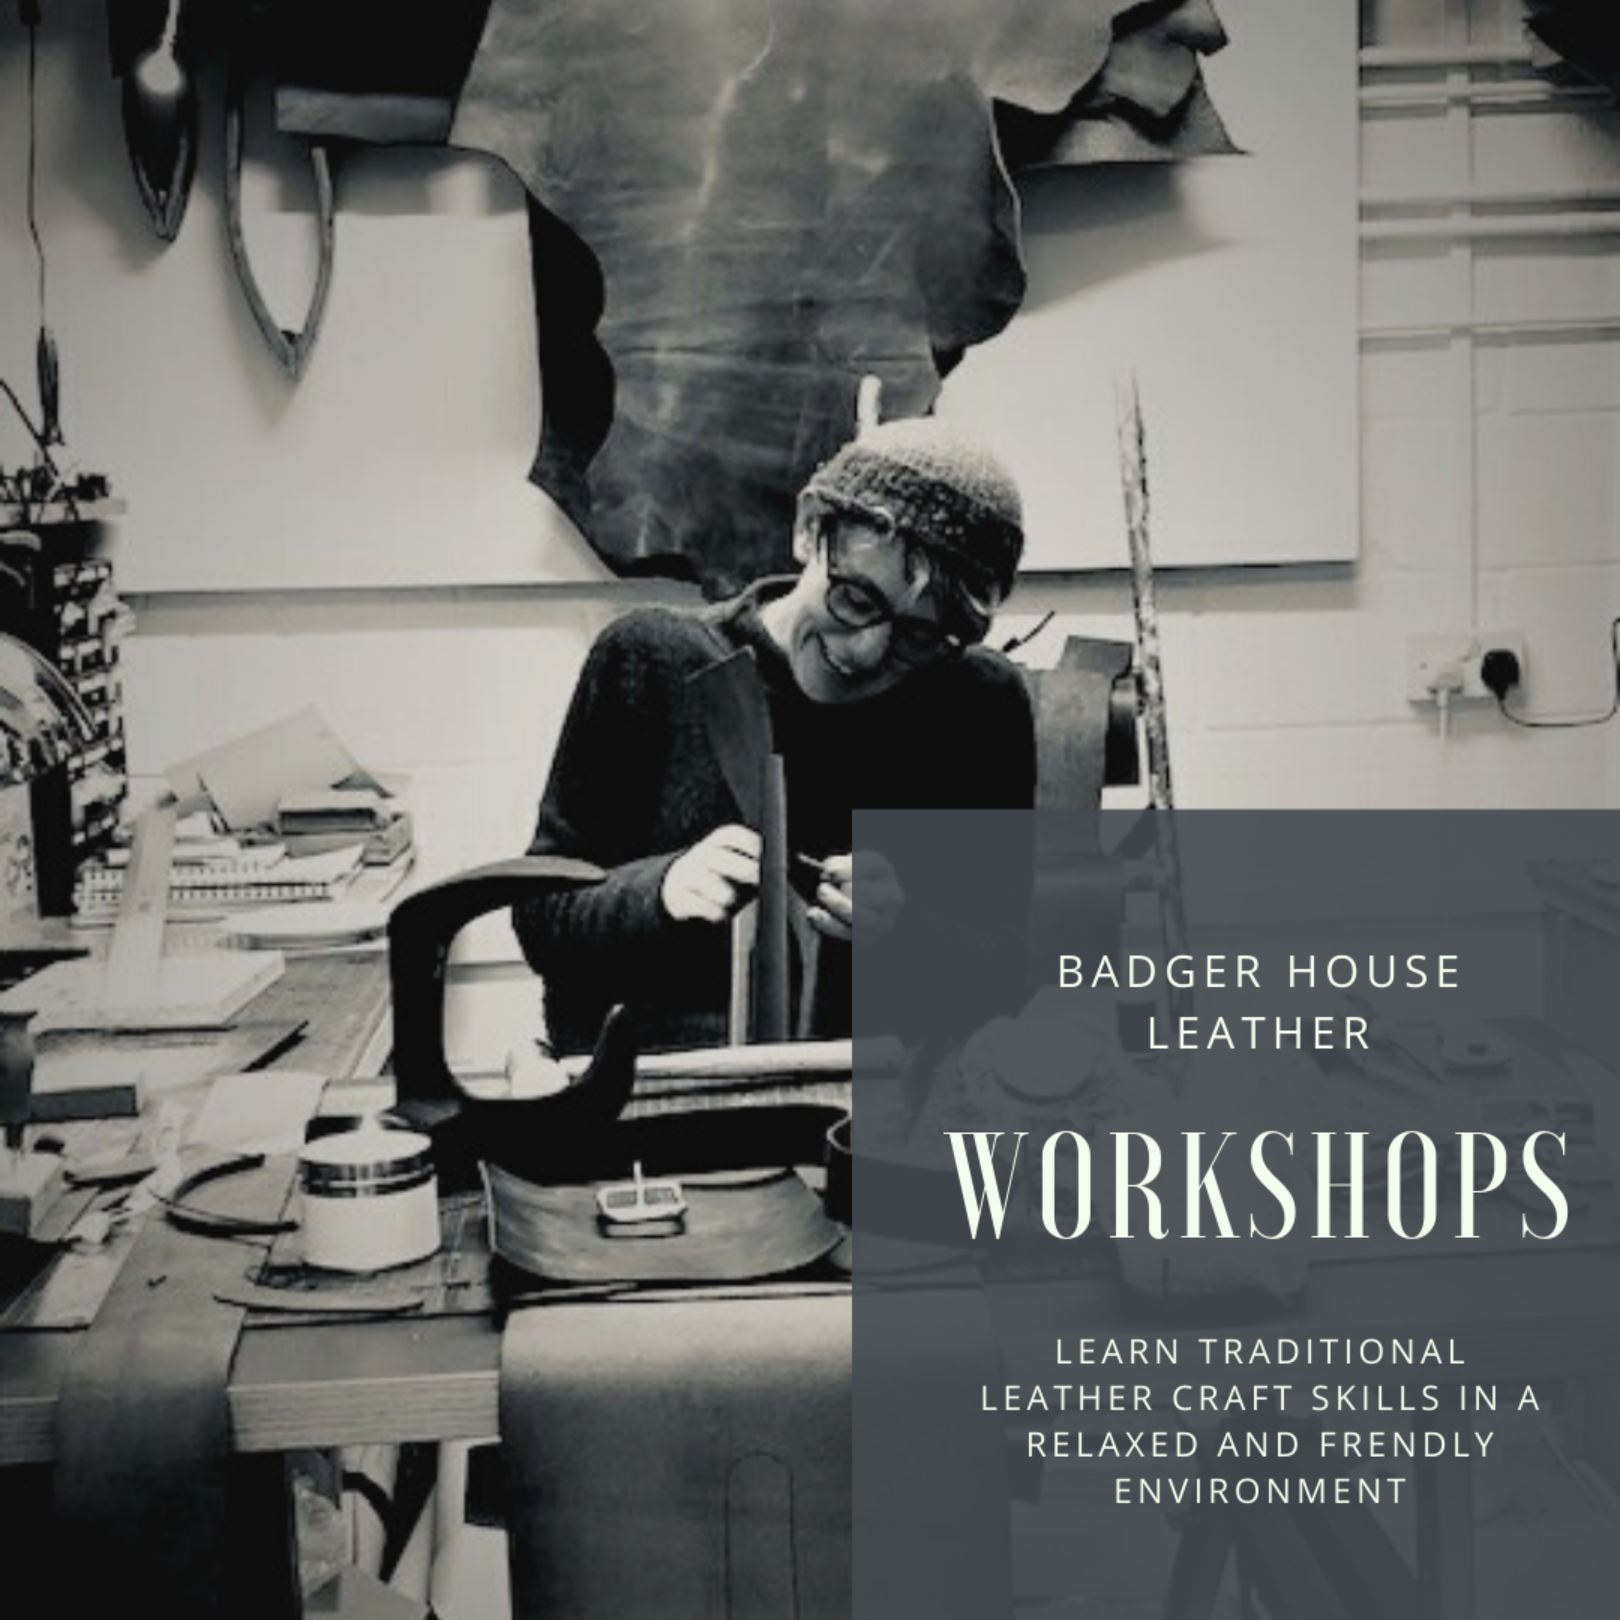 Leather workshops in Frome, Somerset working with sustainable leather